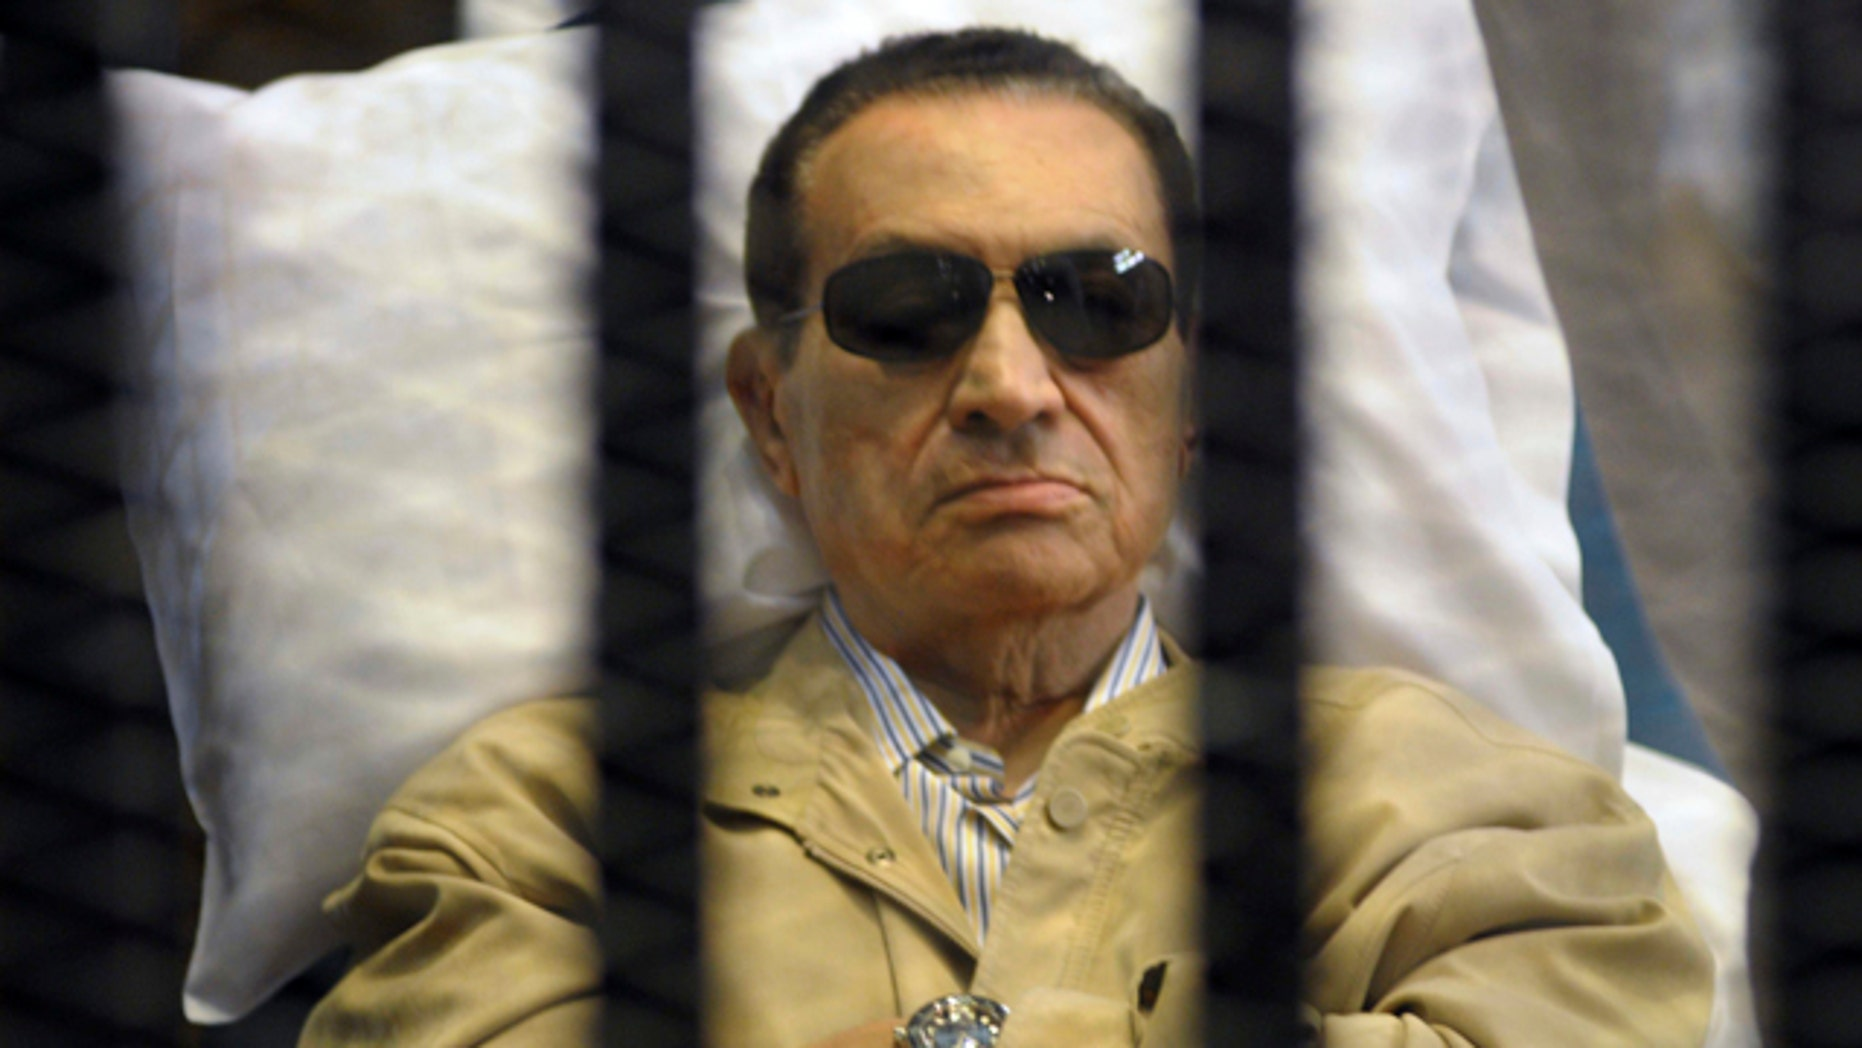 June 2, 2012: Egypt's ex-President Hosni Mubarak lays on a gurney inside a barred cage in the police academy courthouse in Cairo, Egypt.